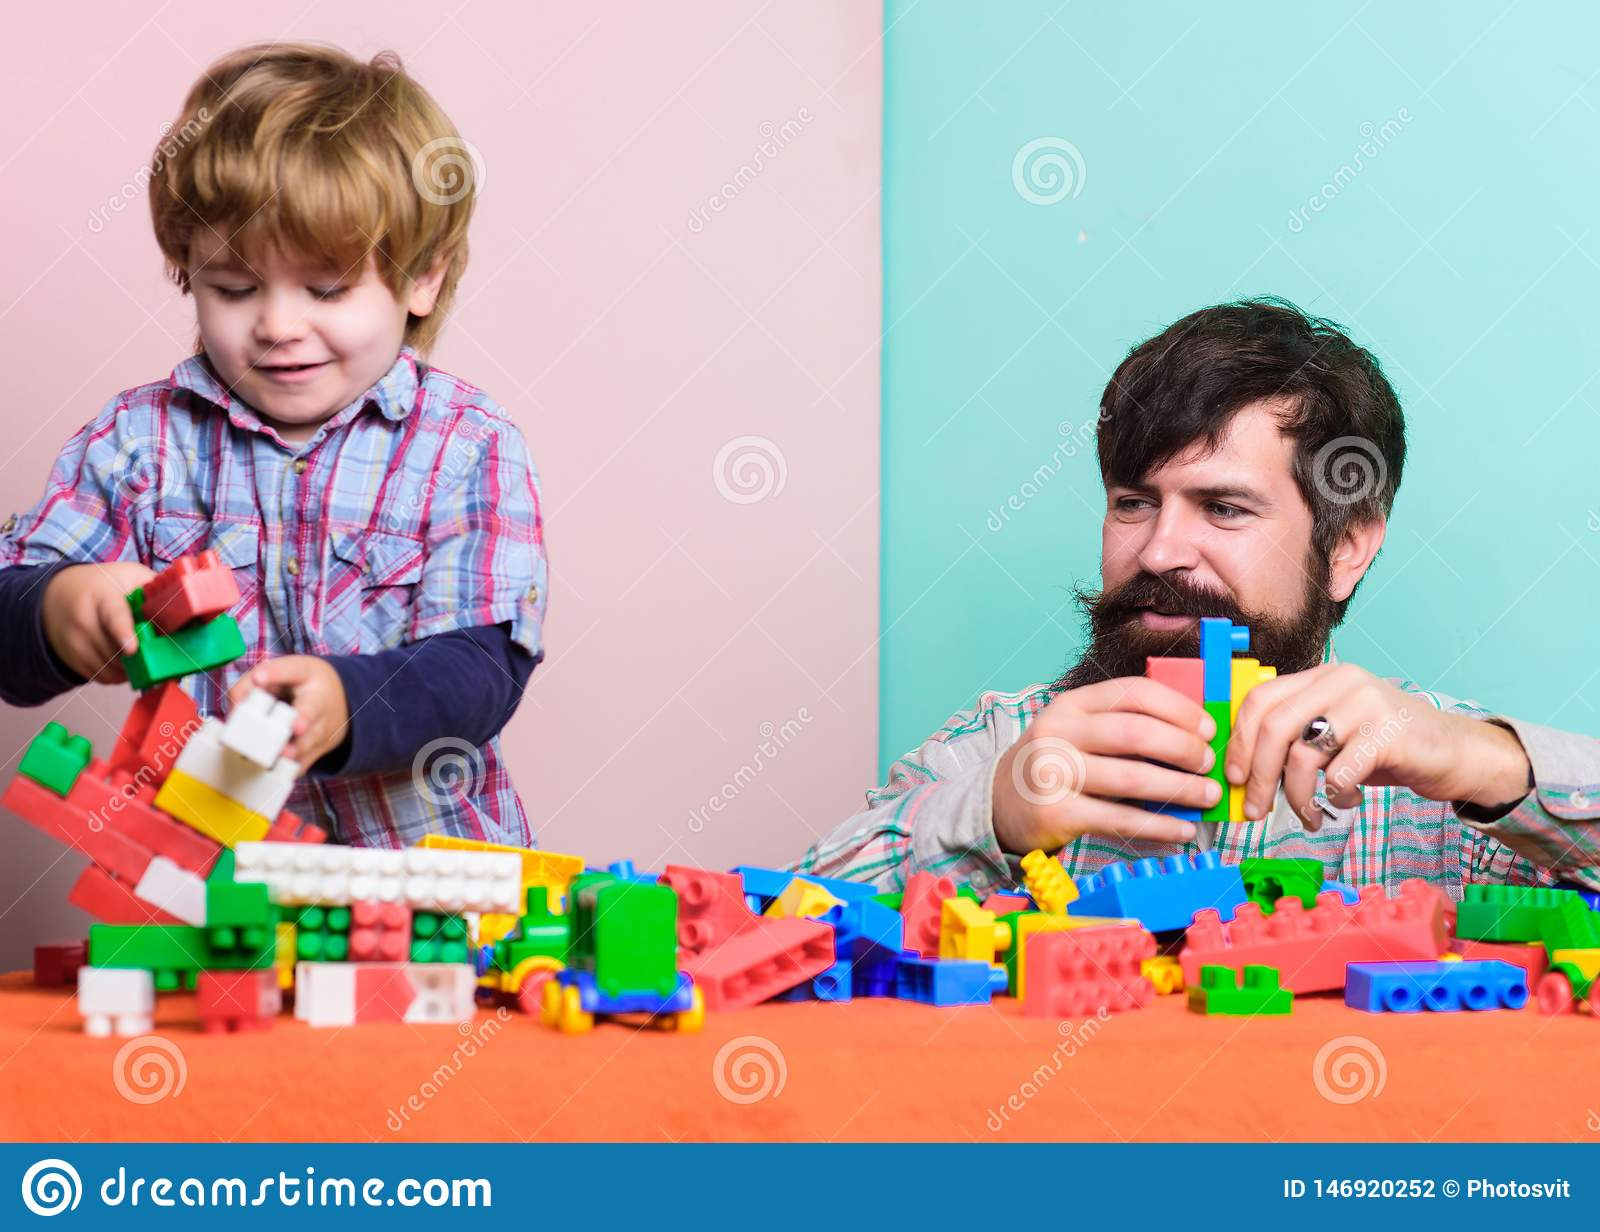 Child care development and upbringing. Father son game. Father and son create colorful constructions with bricks